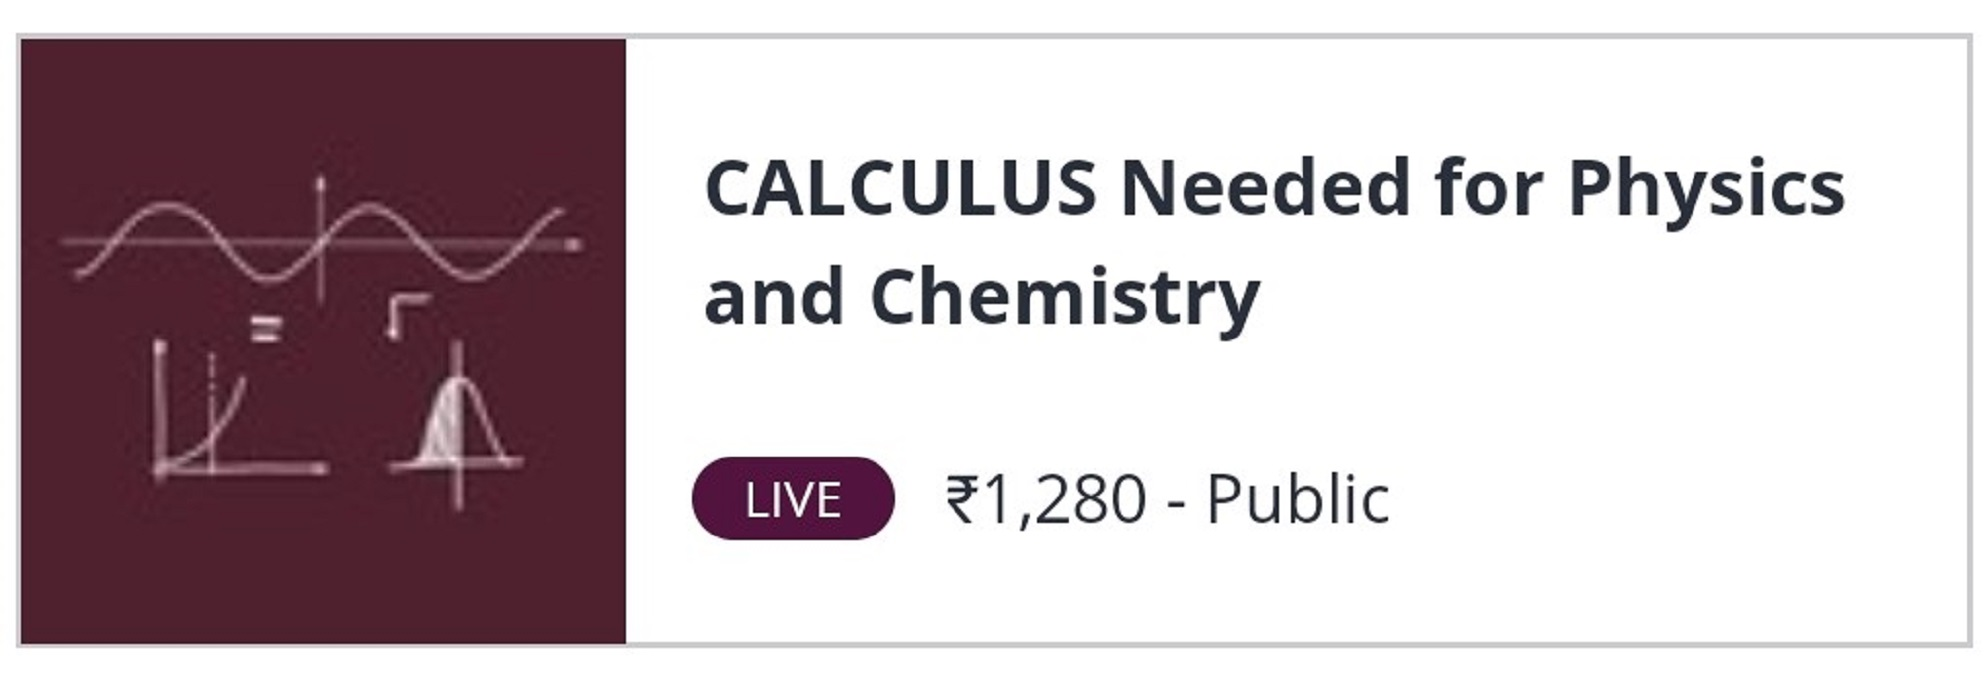 CALCULUS for Physics & Chemistry